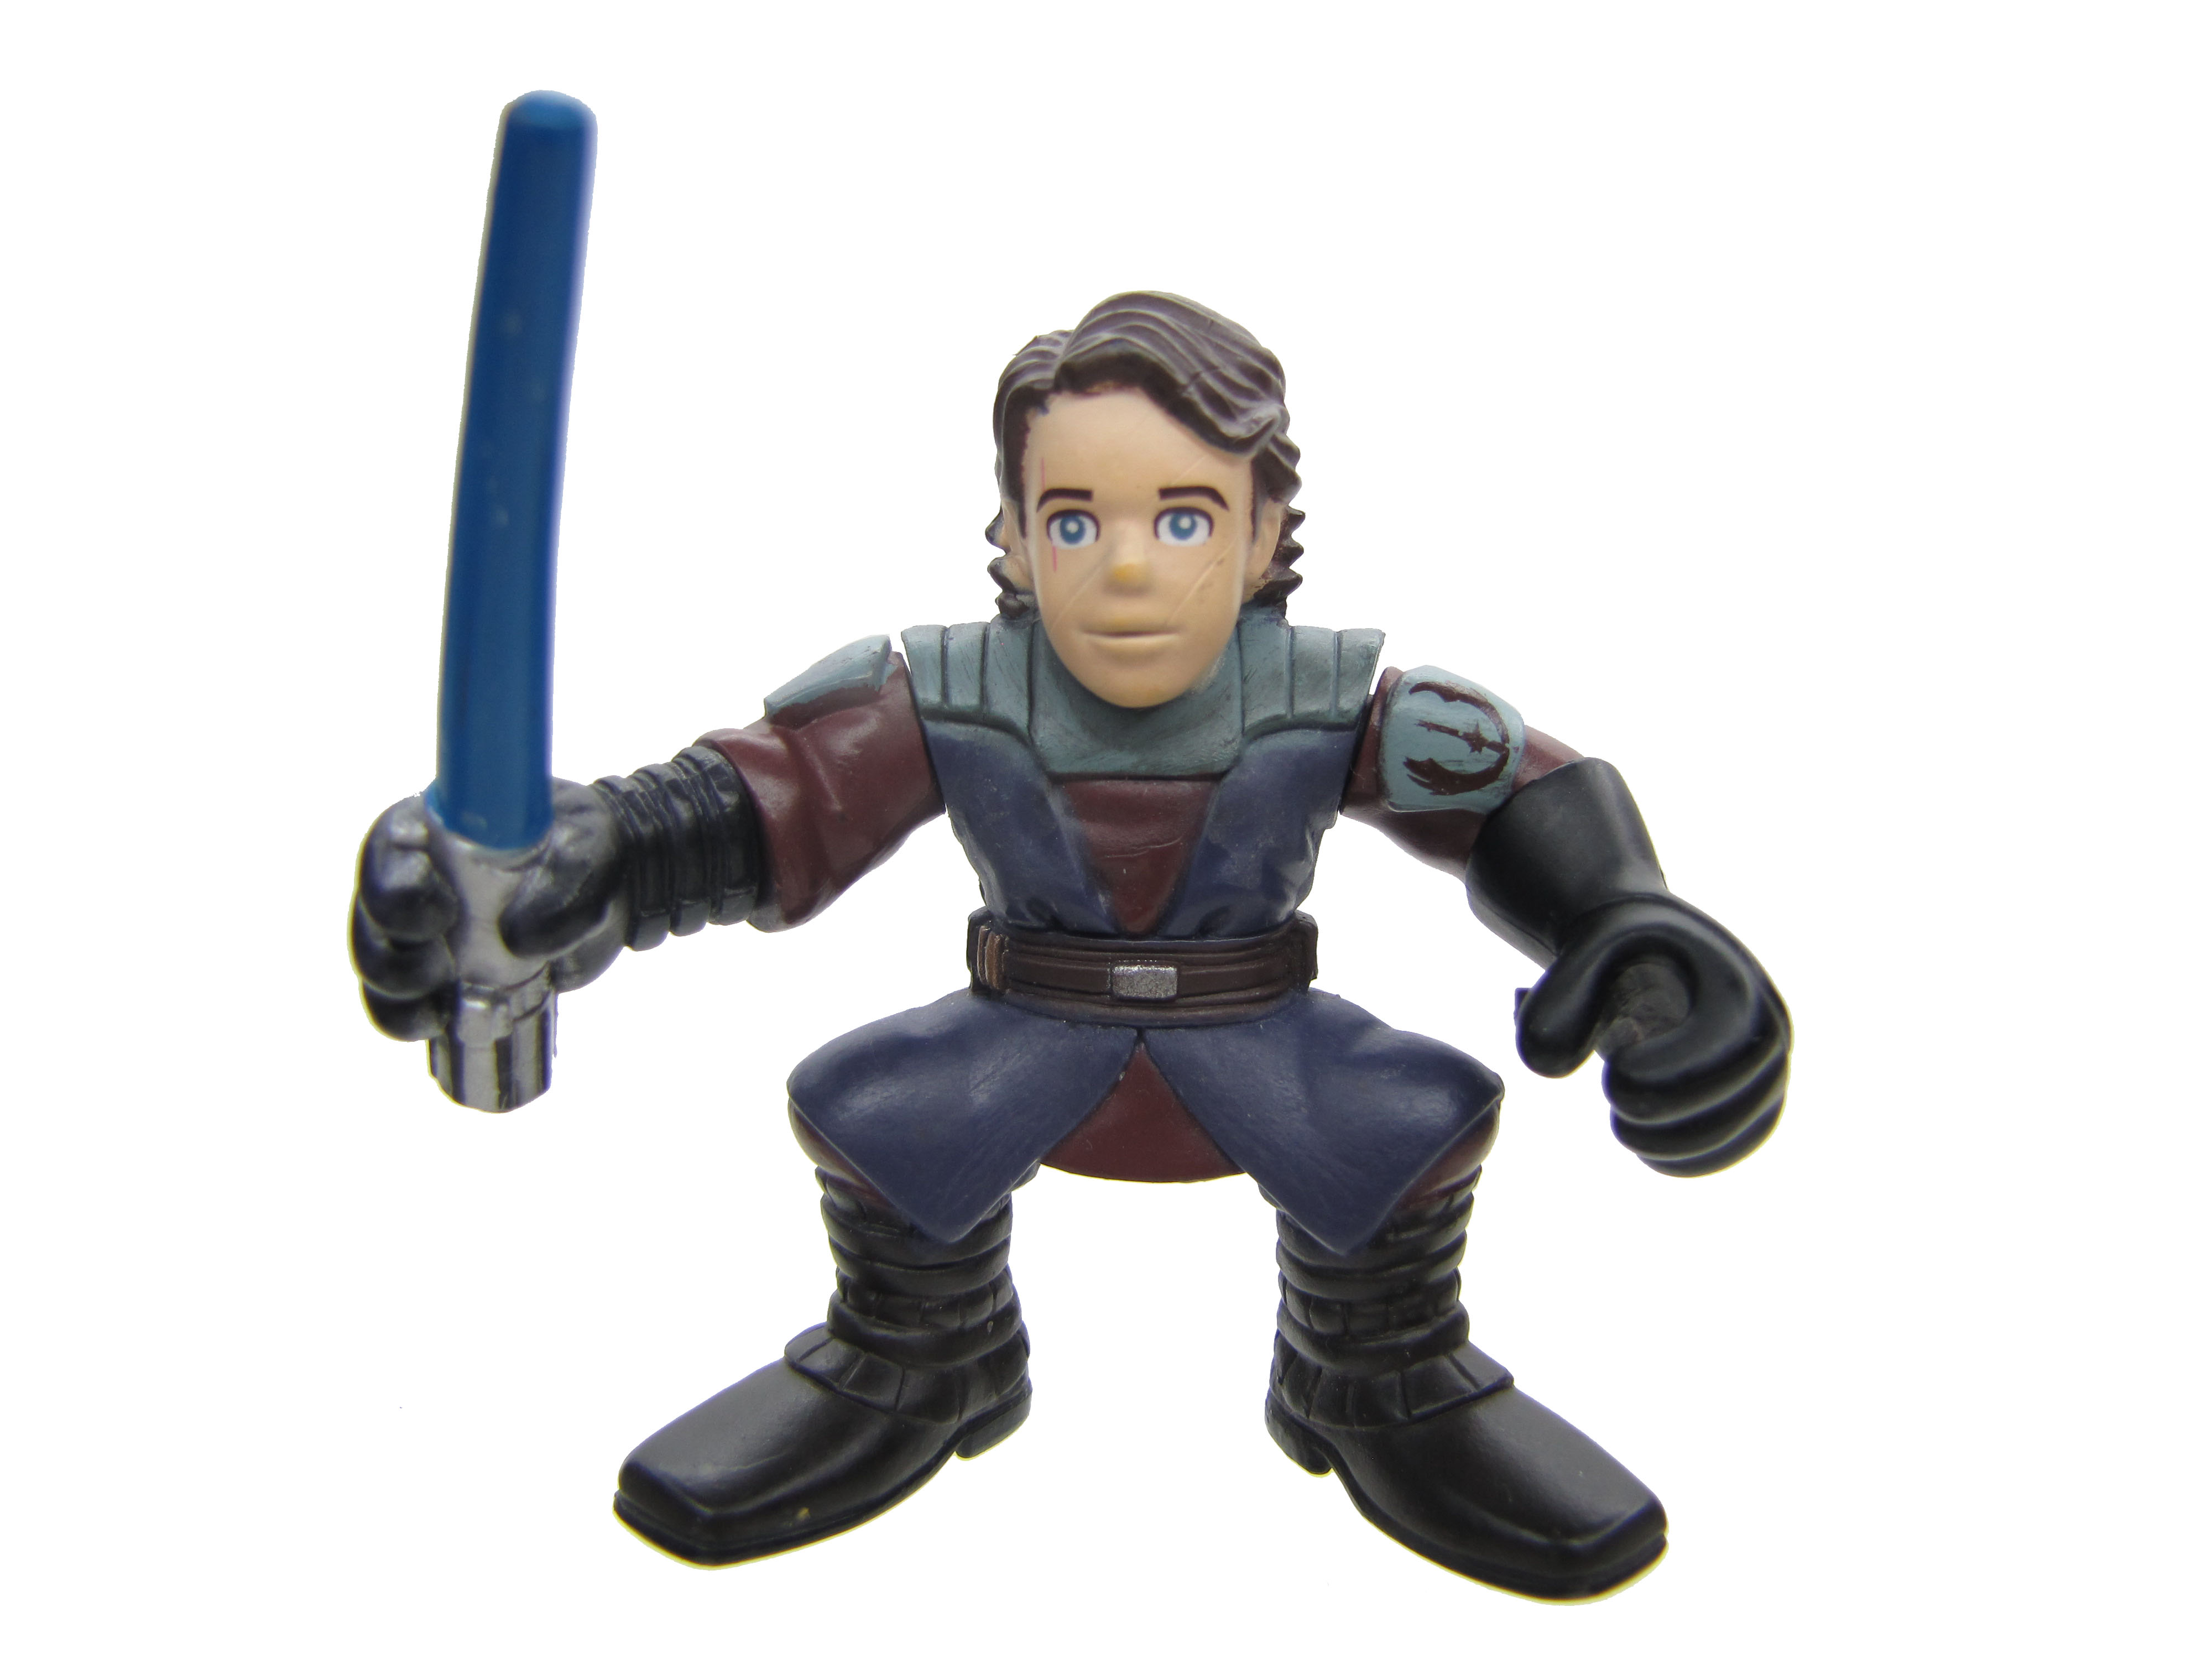 Star Wars Galactic Heroes Anakin Skywalker Revenge of the Sith